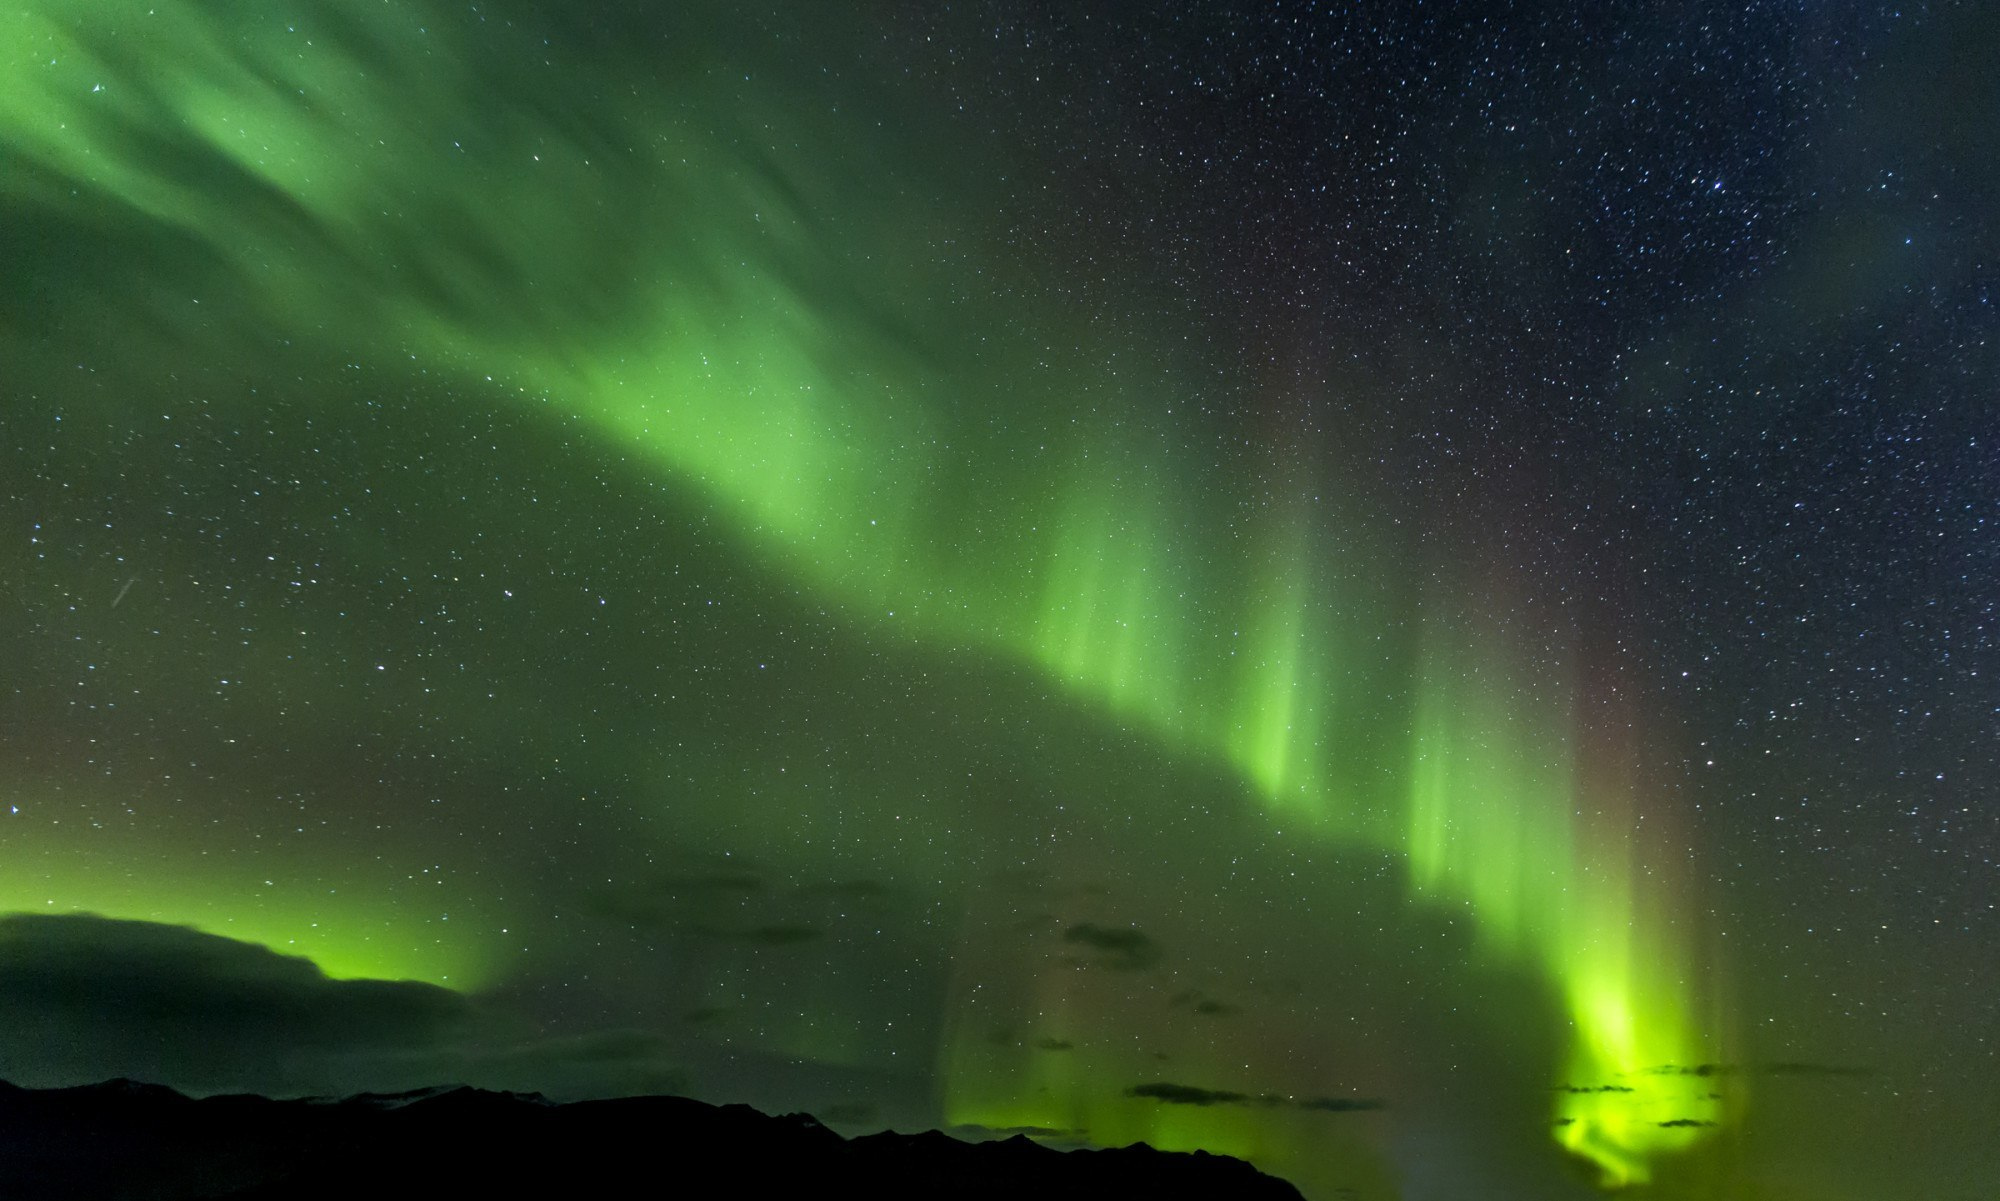 That is what I call northern lights!